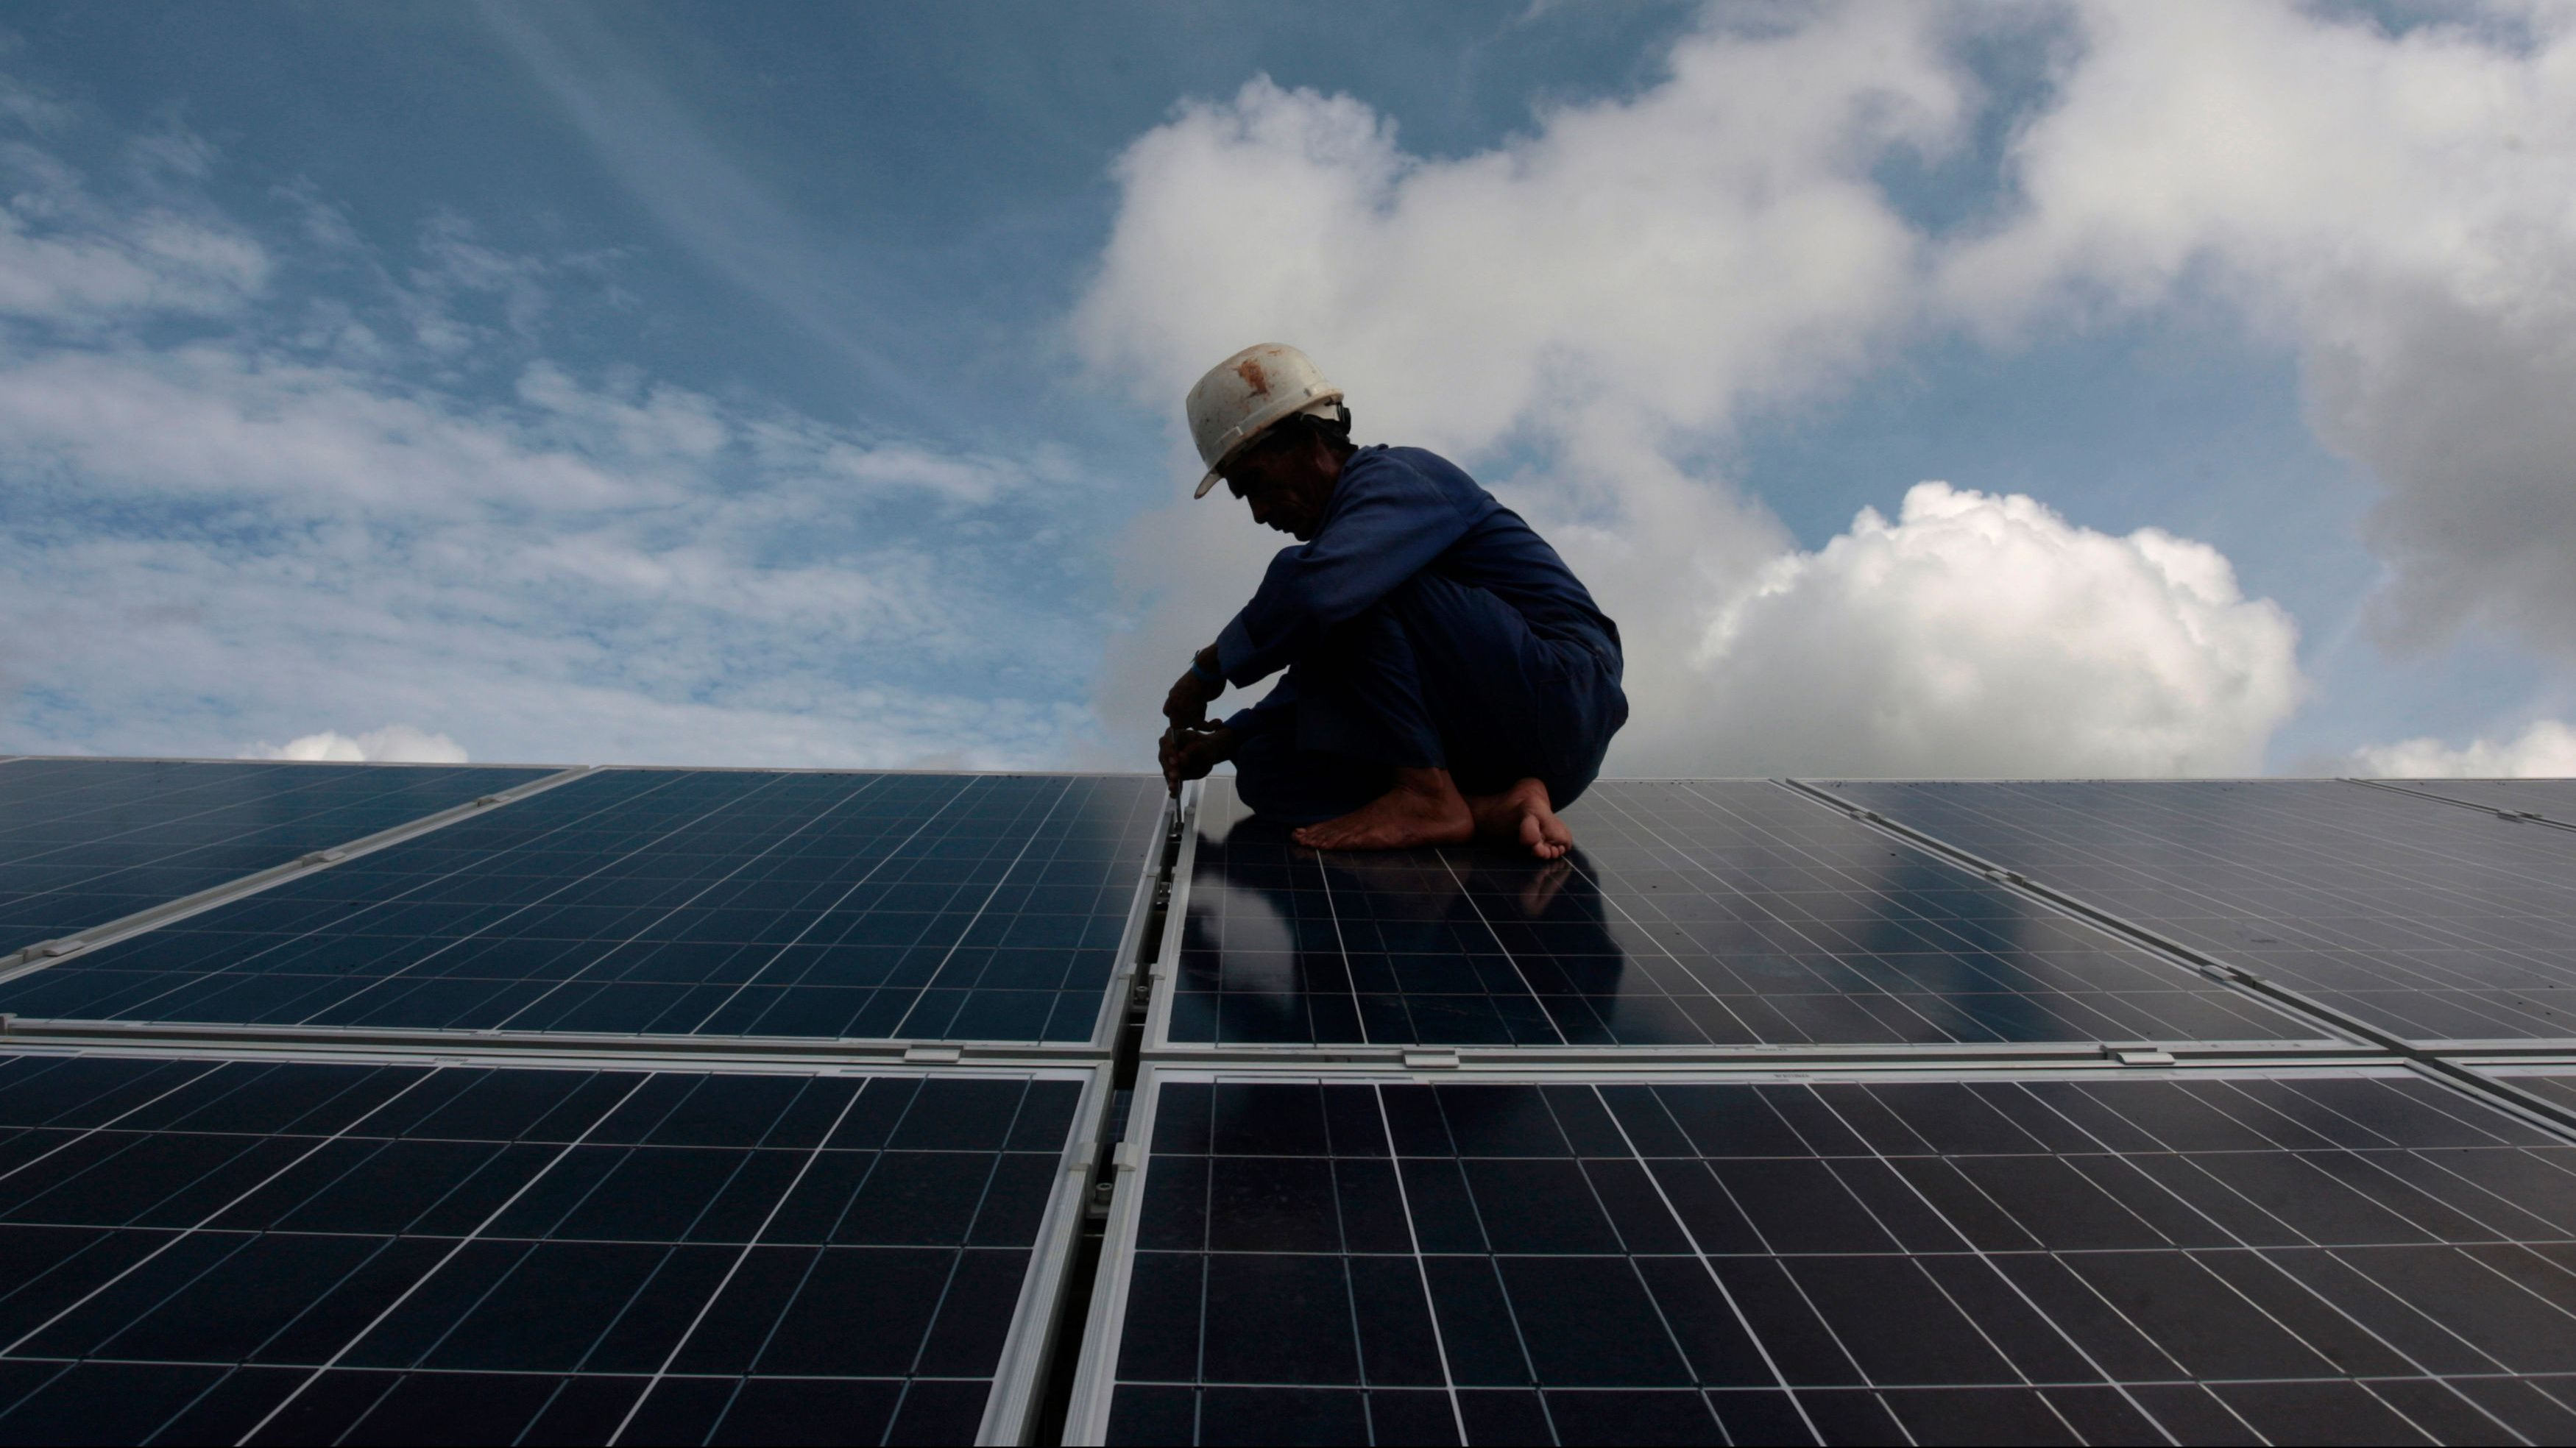 qz.com - Kuwar Singh - India will add a record level of solar power capacity in 2019